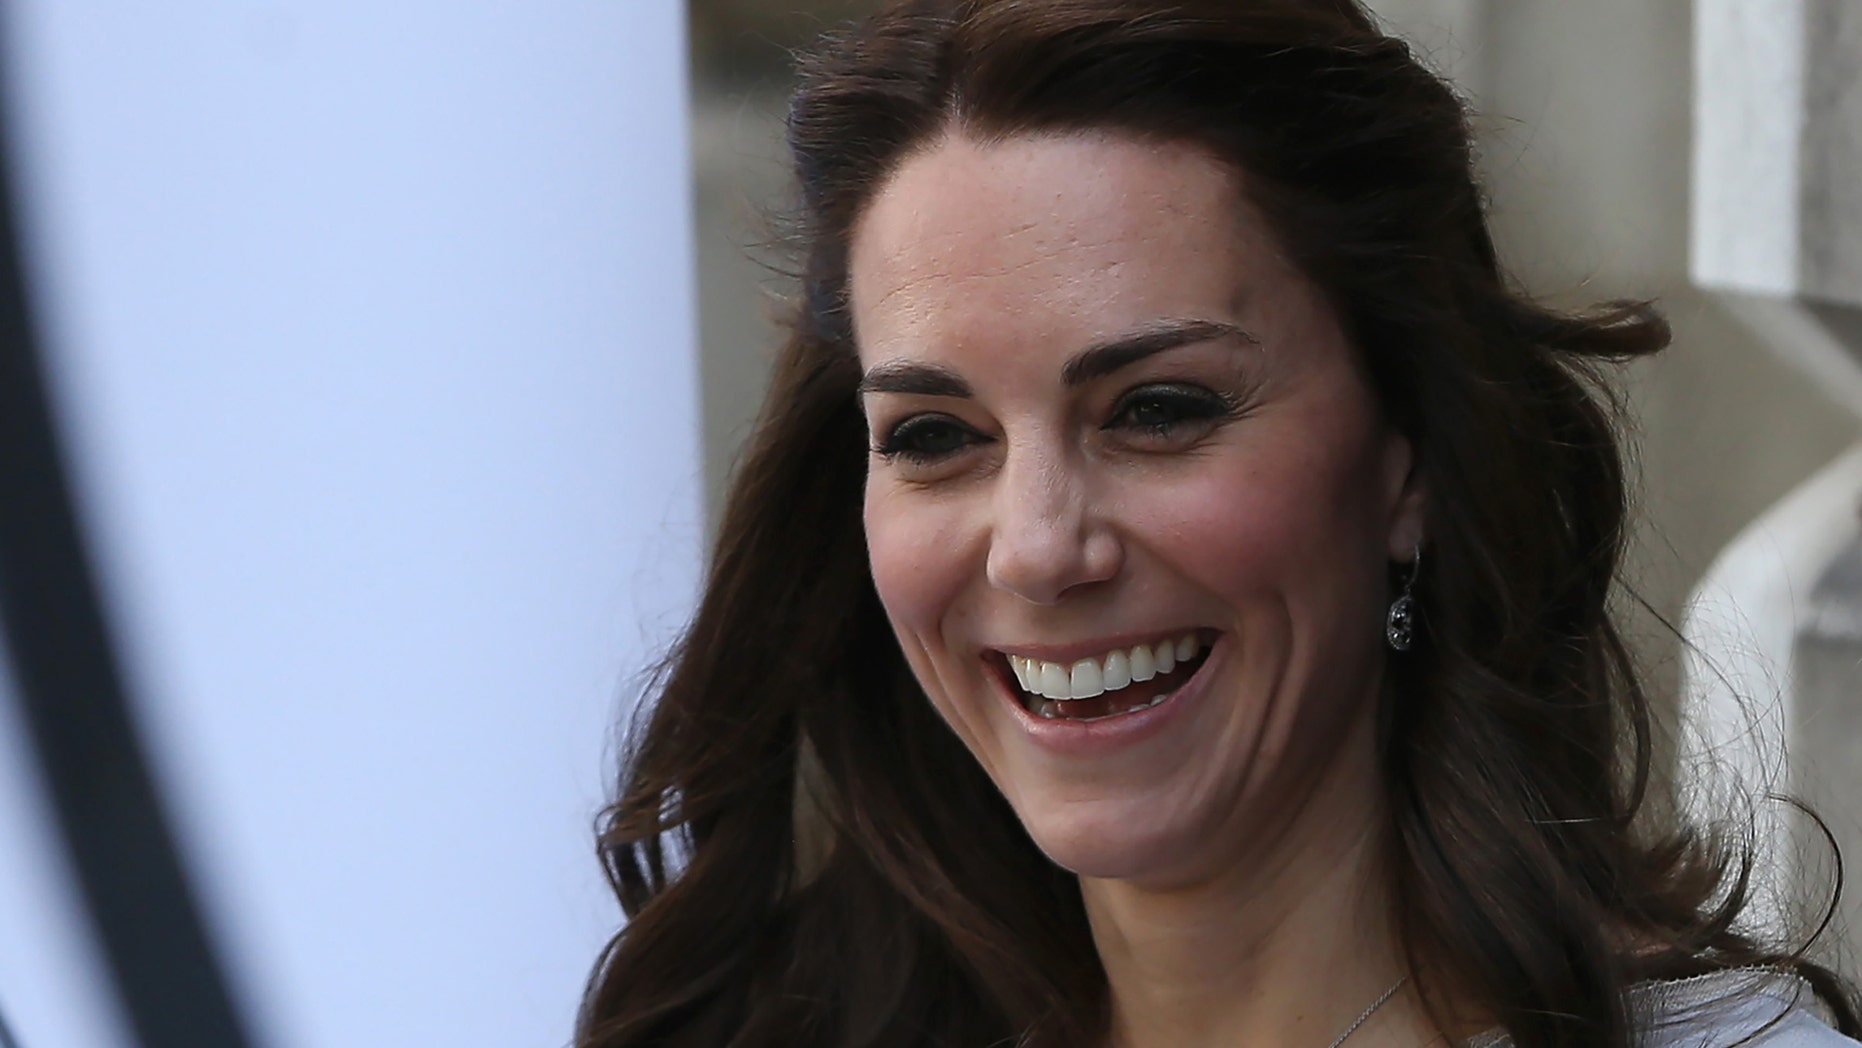 Britain's Catherine, Duchess of Cambridge arrives at an event for the Anna Freud Centre at Spencer House in London, Britain May 4, 2016.